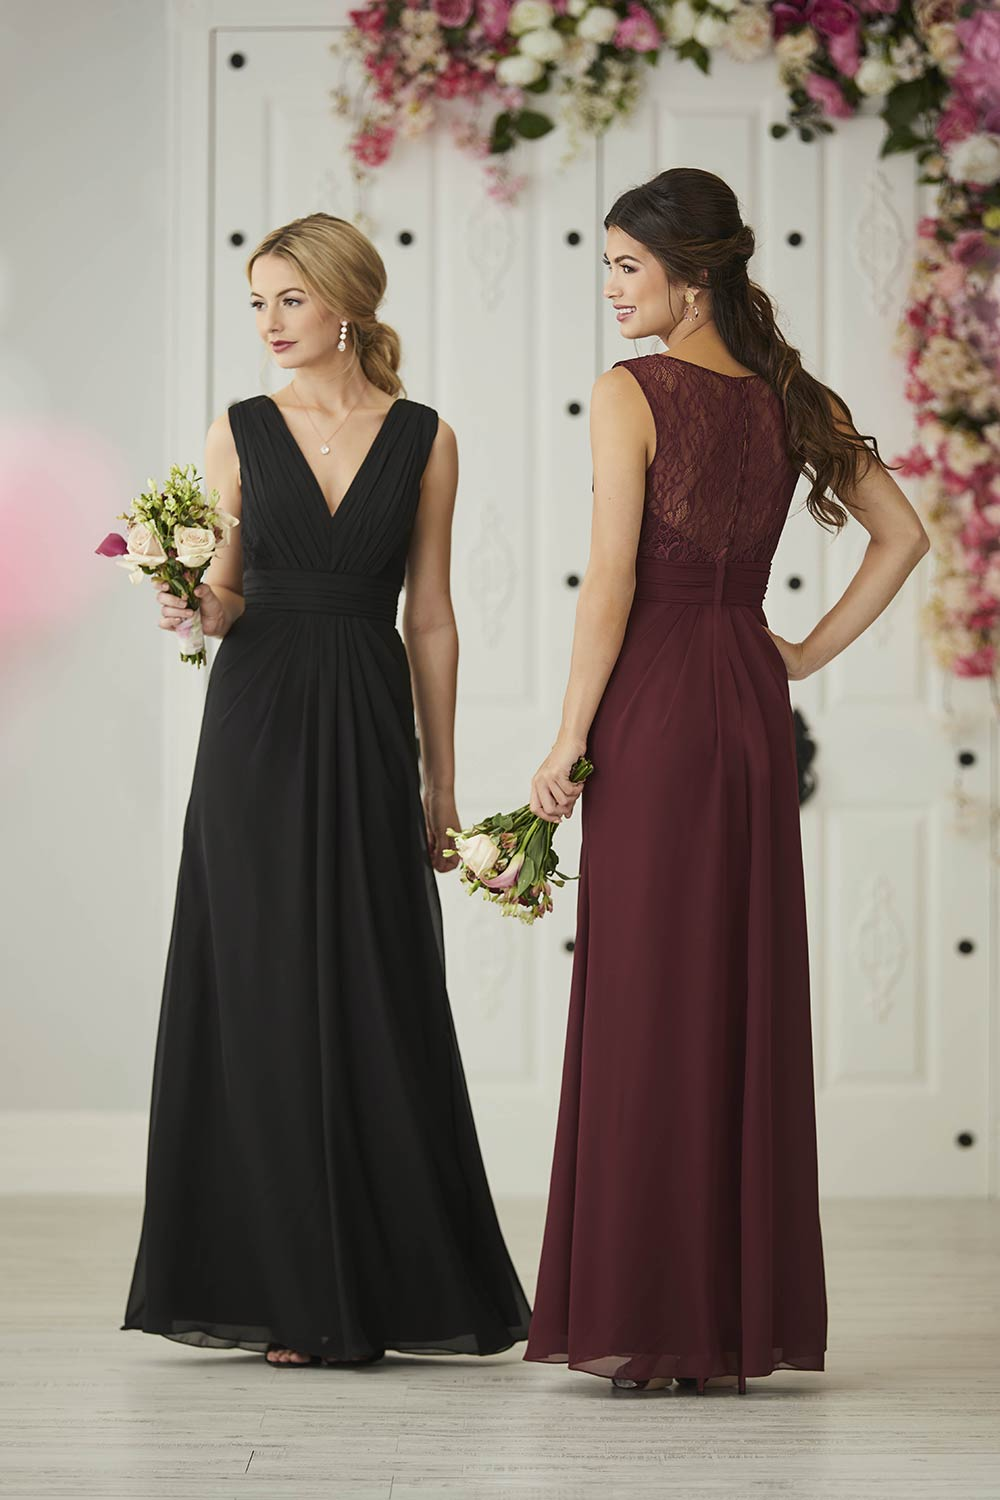 bridesmaid-dresses-jacquelin-bridals-canada-27310